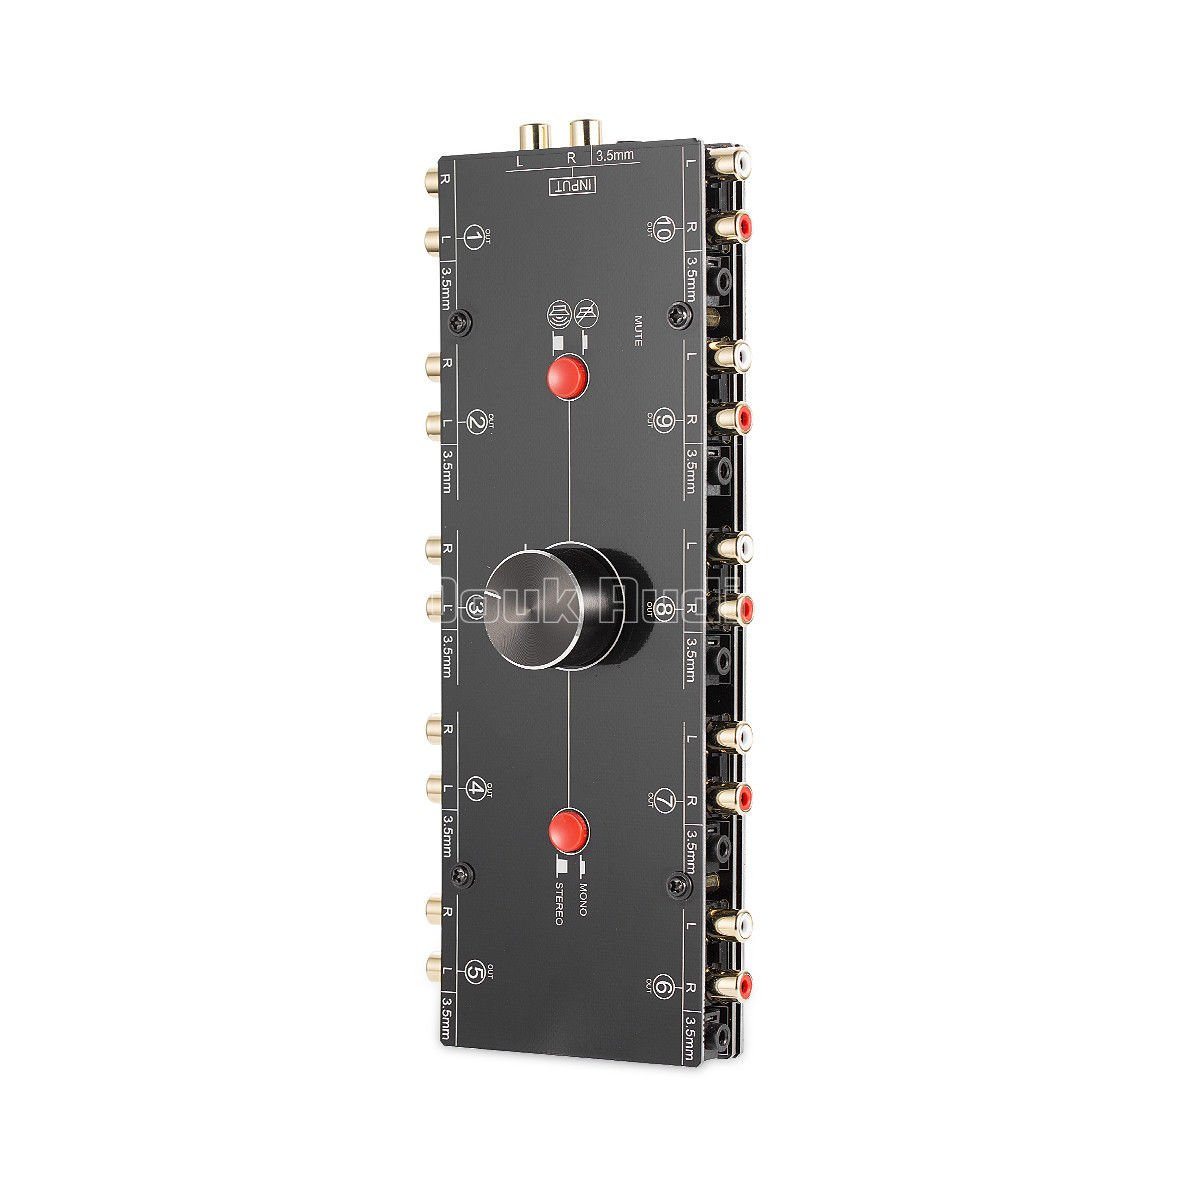 Nobsound Little Bear MC110 1-IN-10-OUT 3.5mm/RCA Mono/Stereo Analog Audio Switcher; Passive Speaker/Headphone/Amplifier Manual Selector; Audio Splitter Preamp Audio Sharing (1-IN-10-OUT) by Douk Audio (Image #3)